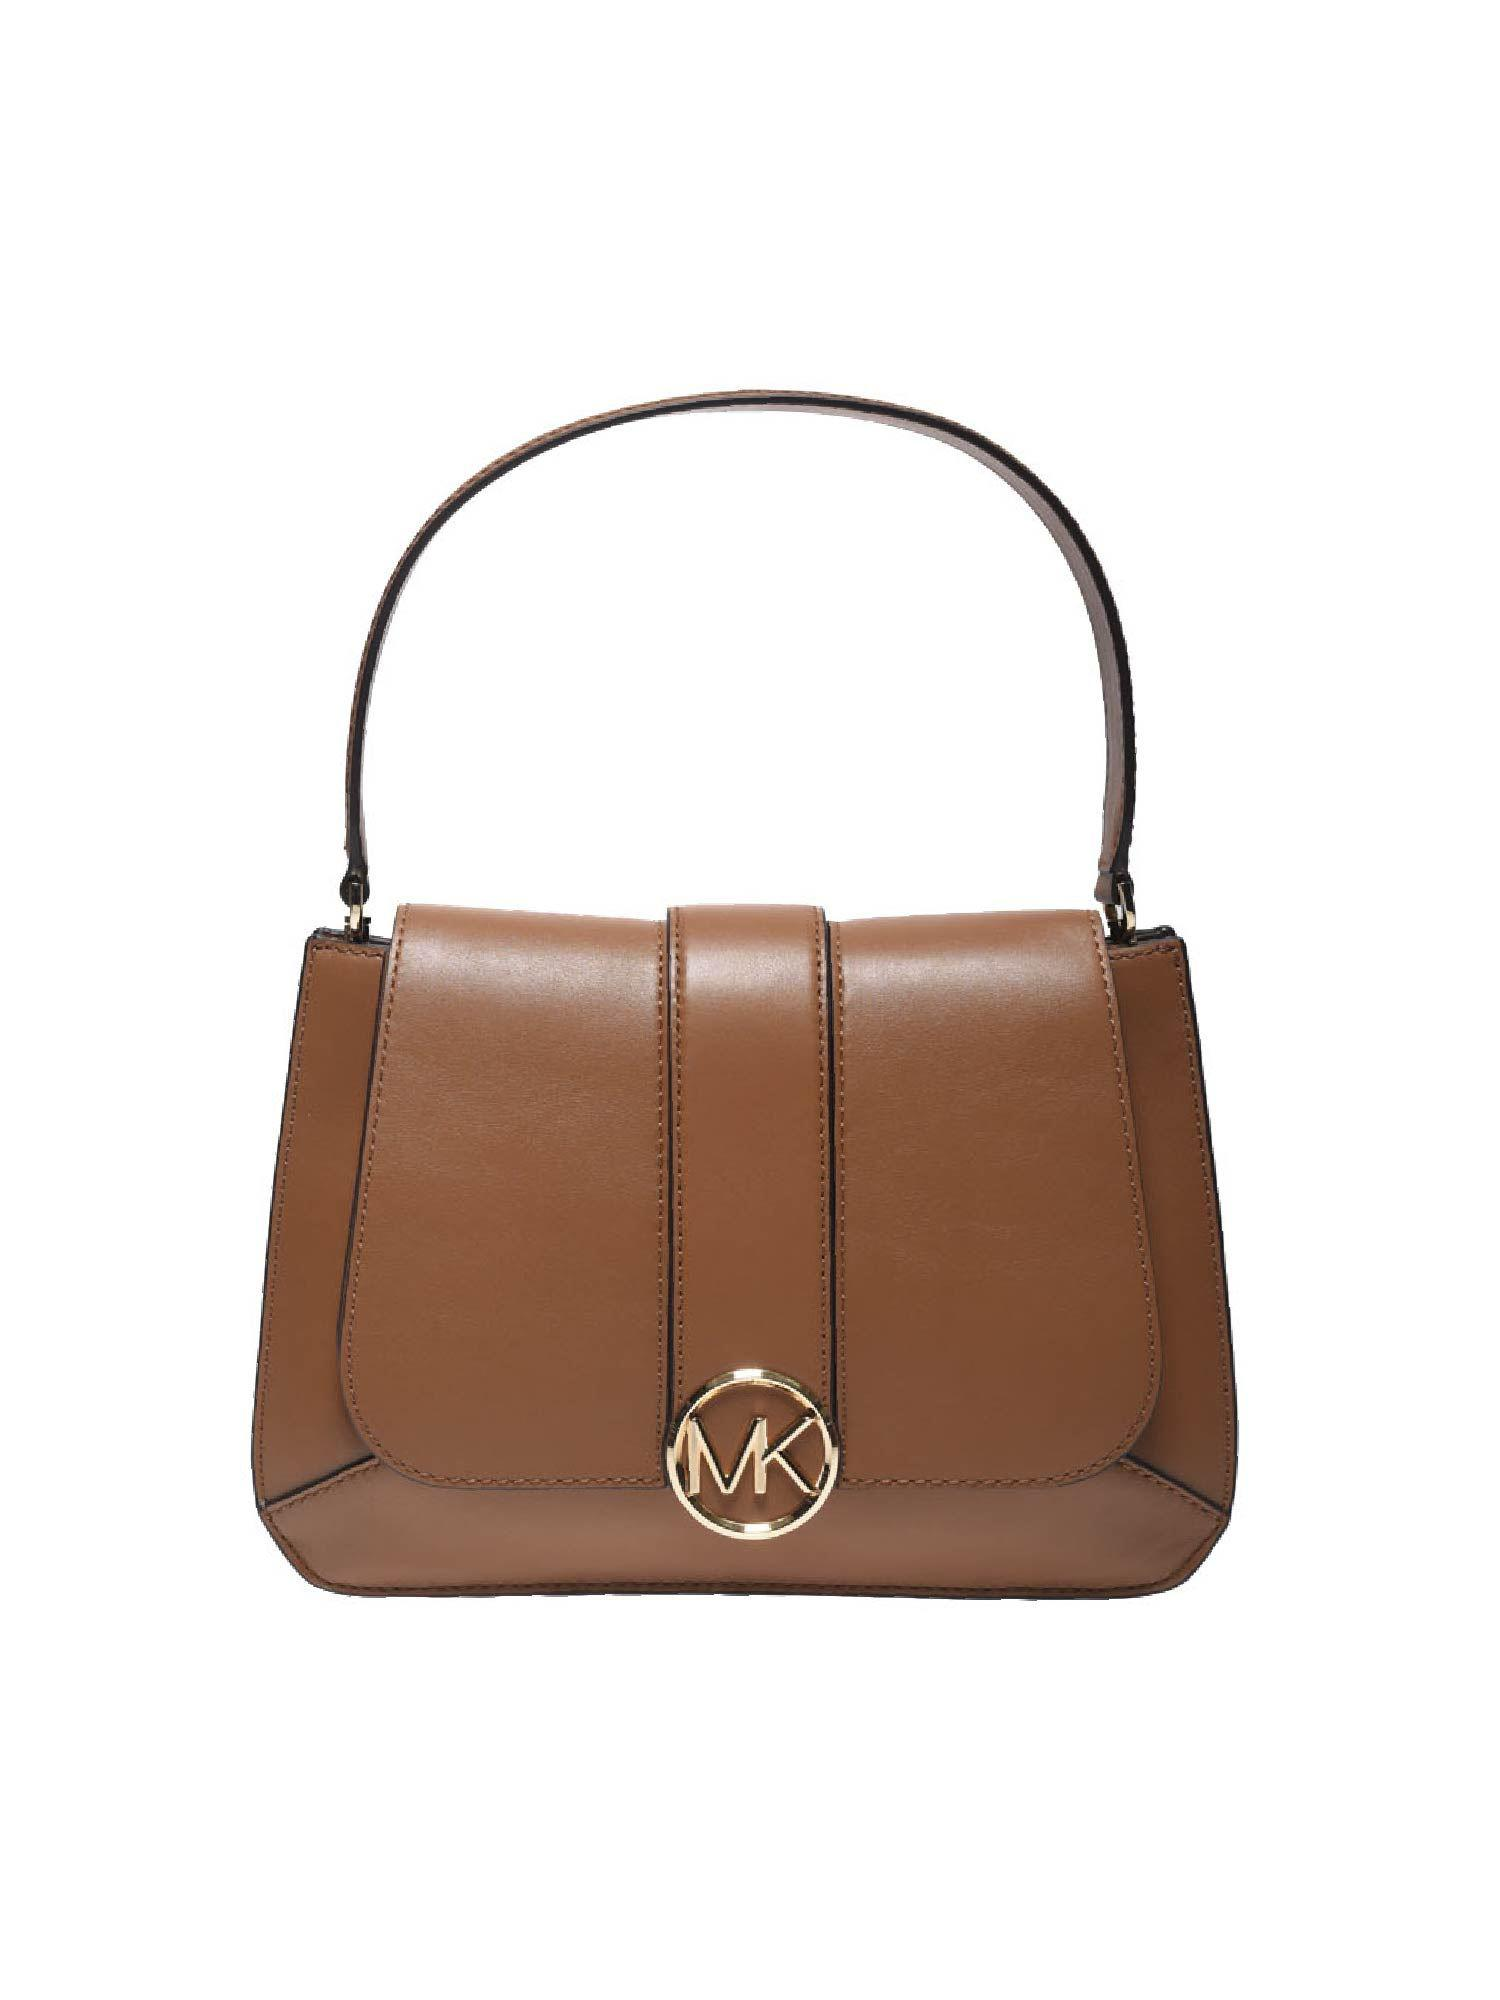 148119005b15 Lyst - Michael Kors Brown